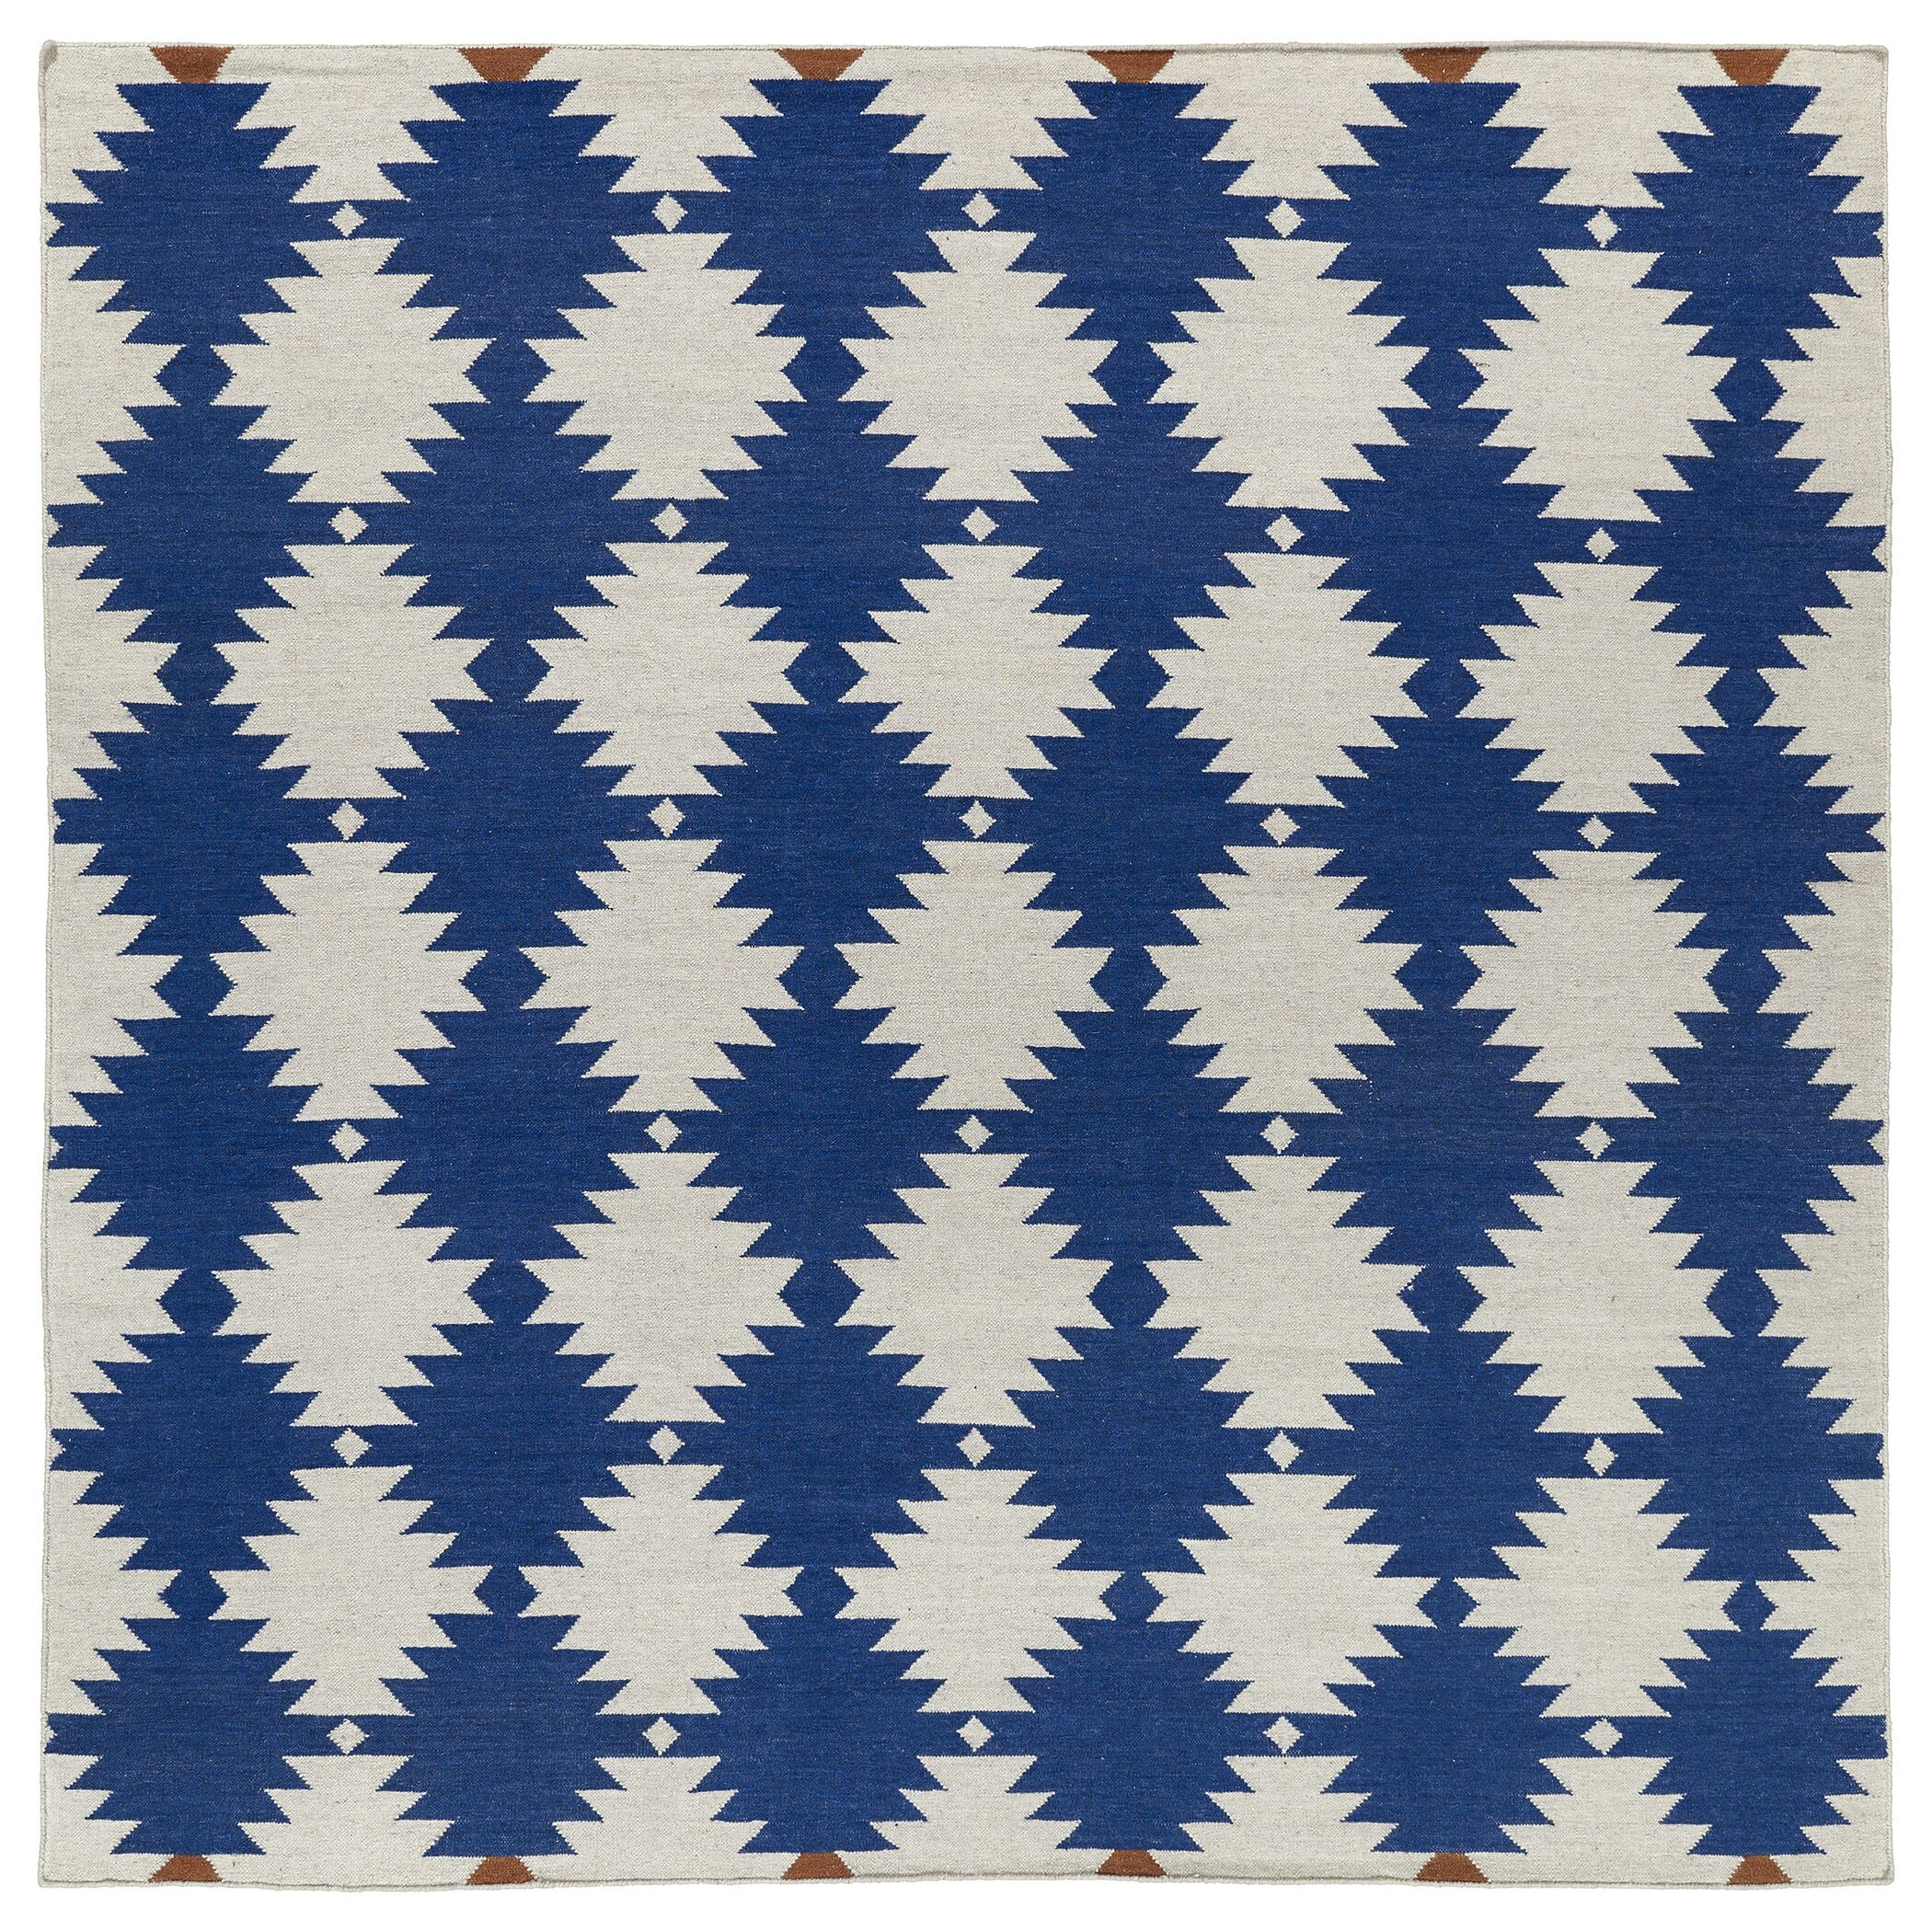 Marble Falls Navy Geometric Area Rug Rug Size: Square 8'